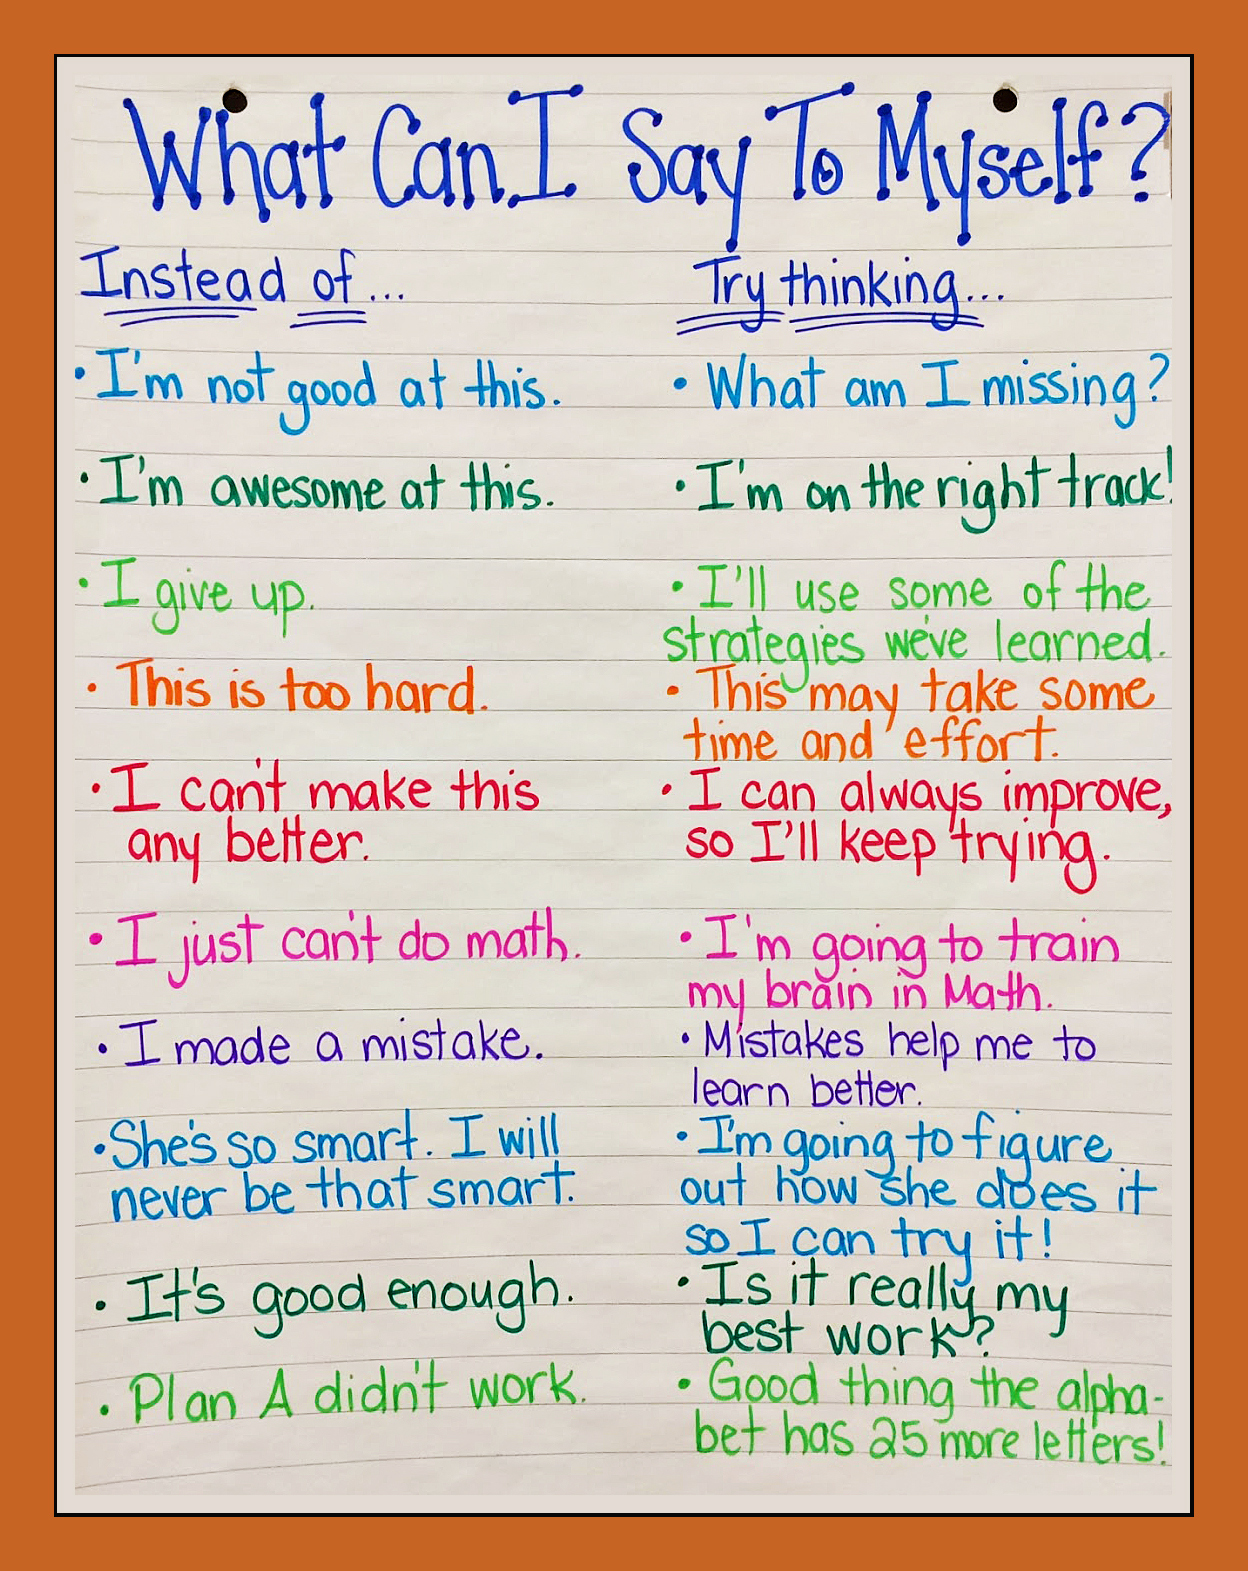 Positive self-talk poster